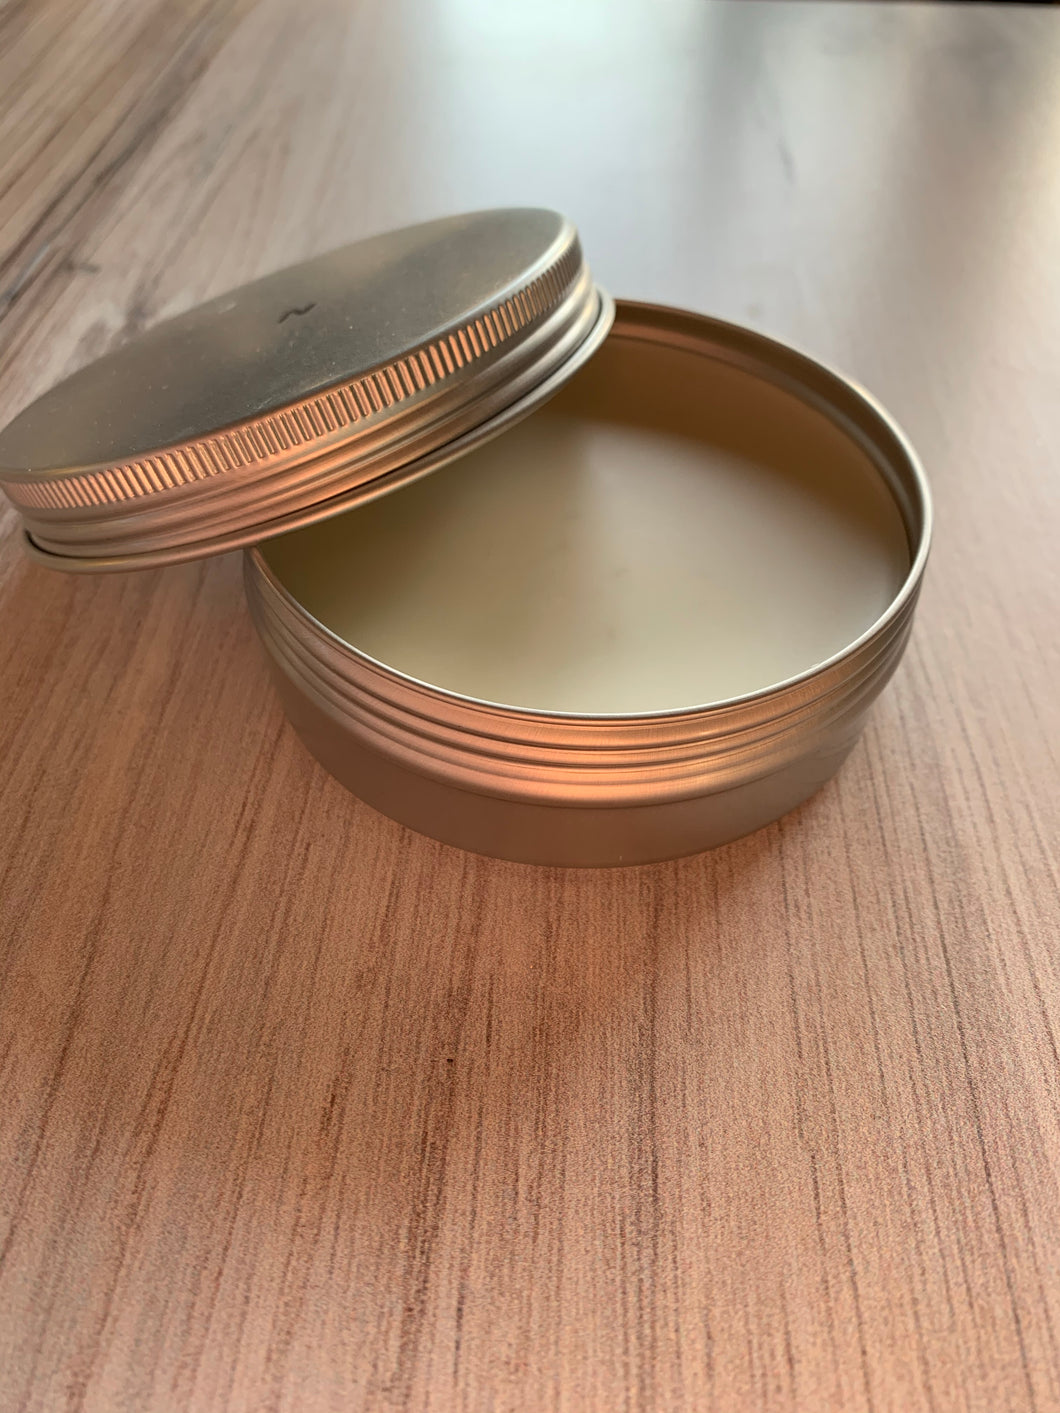 Homemade Moisturizing Balm